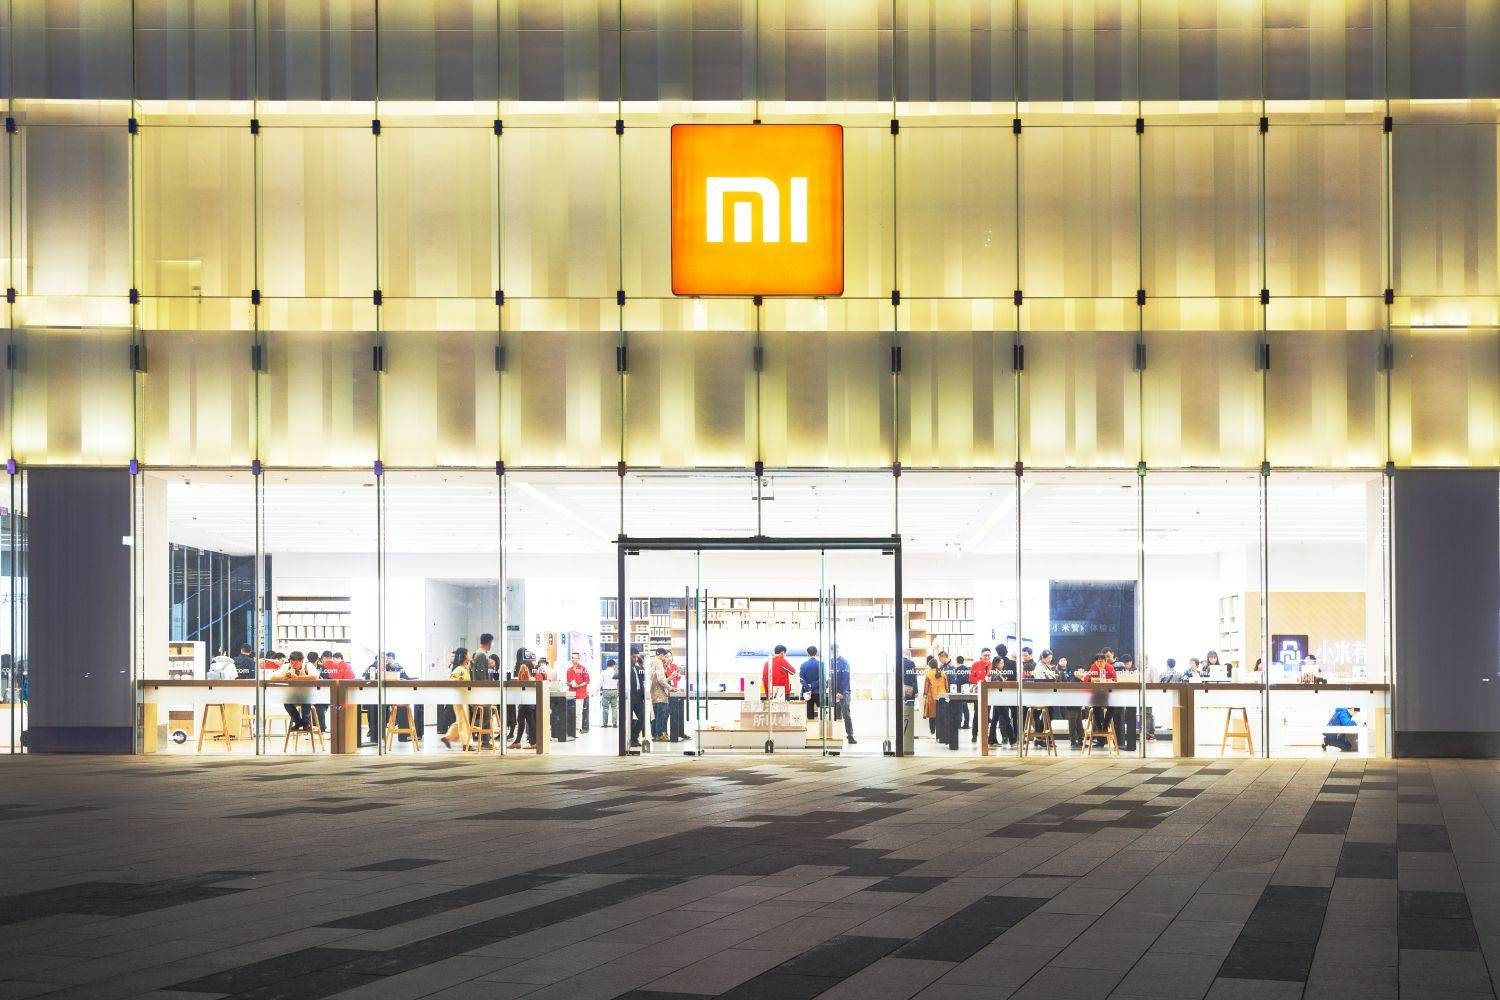 xiaomi,commercial,electronics,shop,smartphone,icon,sign,global,o